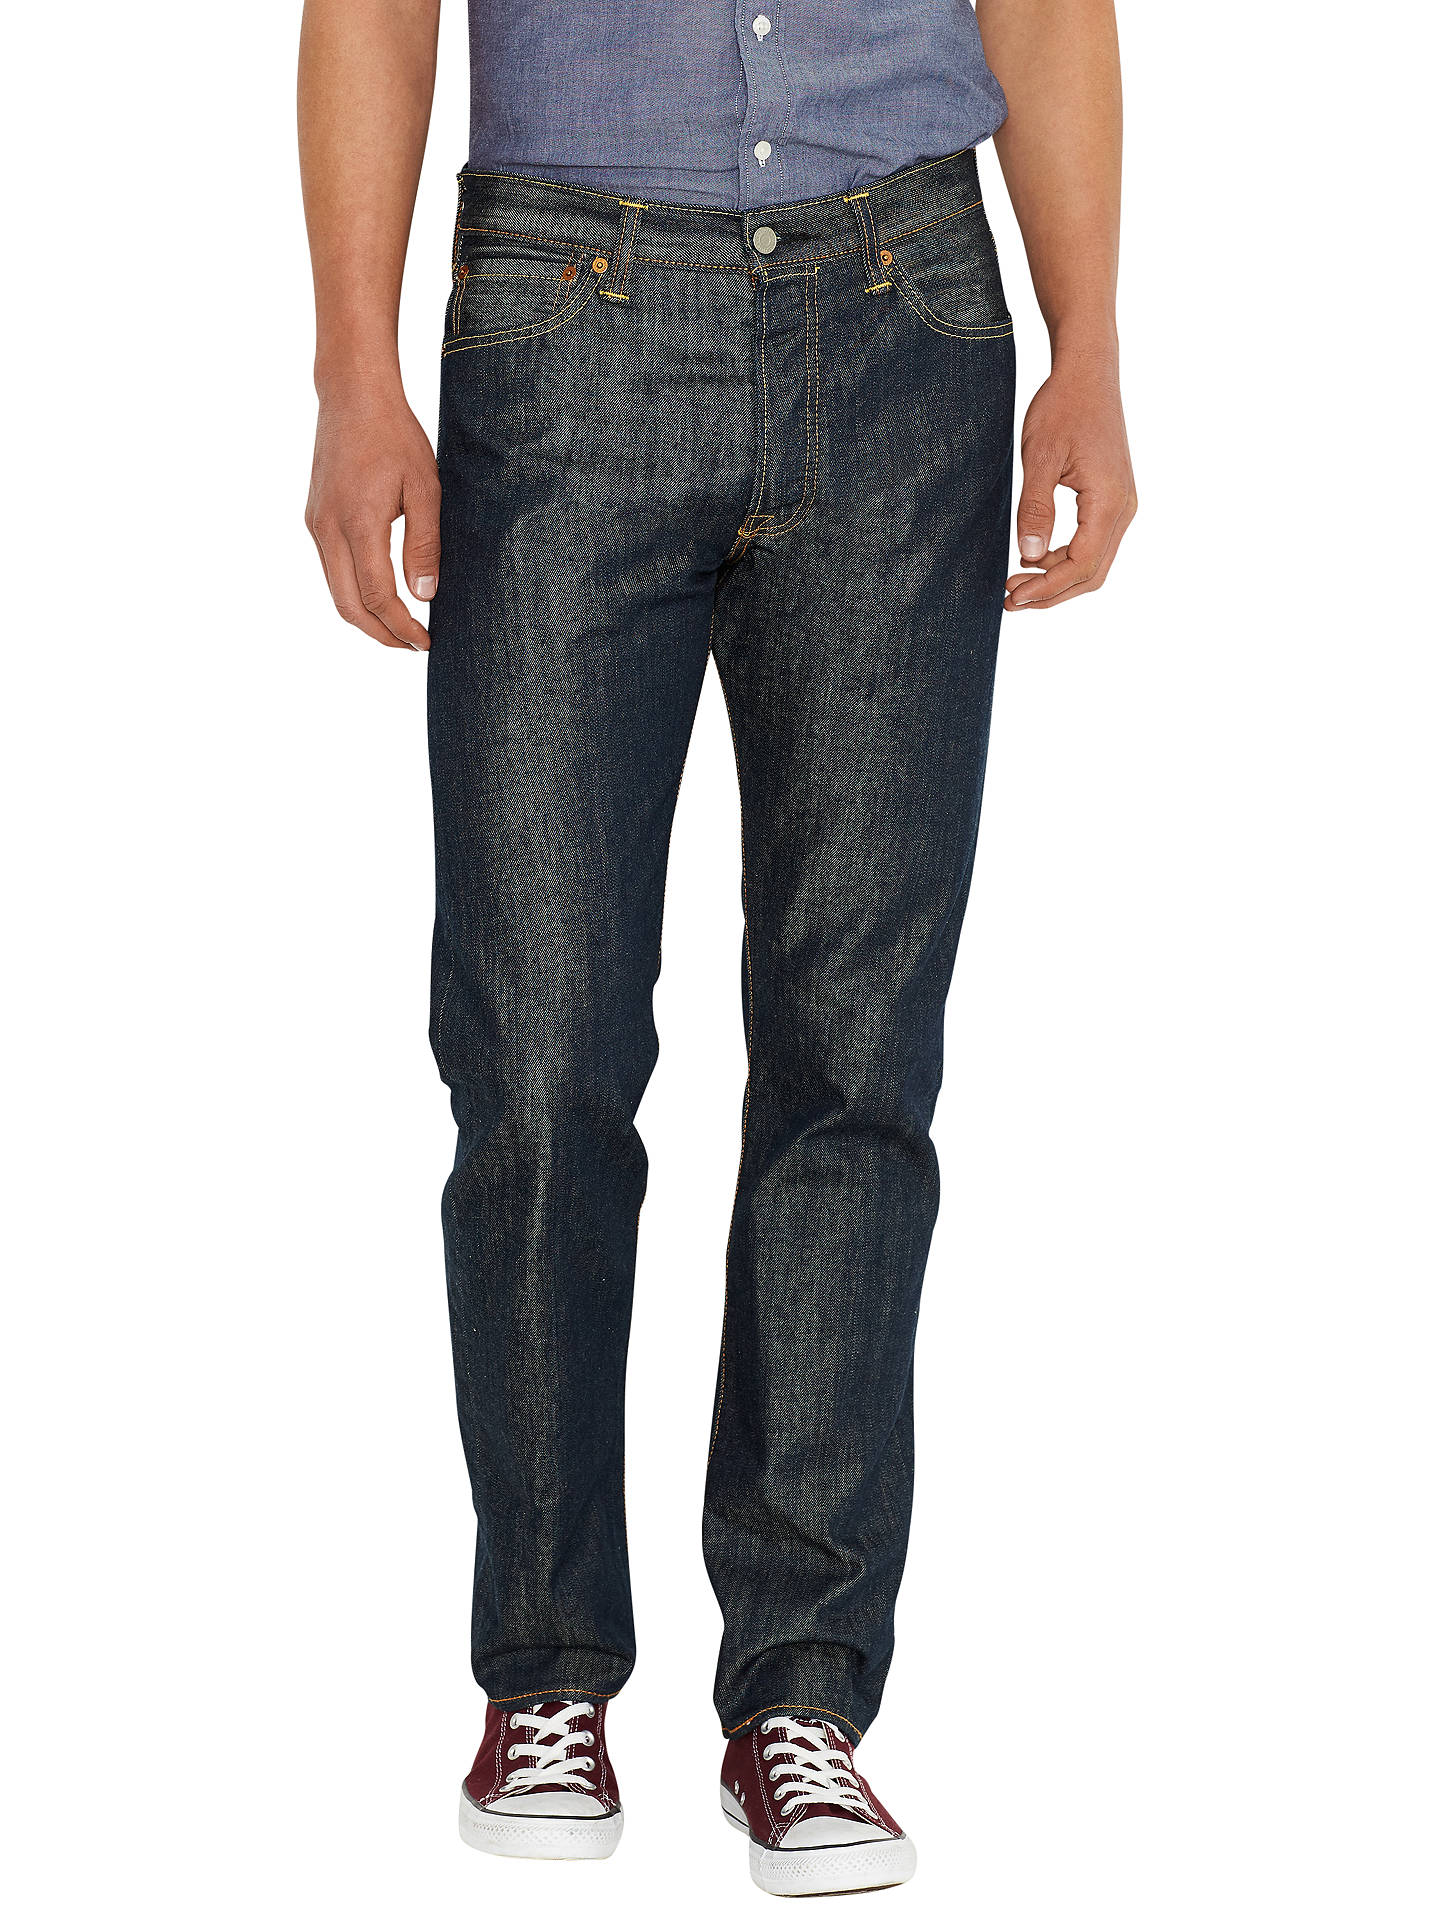 031ce5918ac Buy Levi's 501 Original Straight Jeans, Marlon, 30S Online at johnlewis. ...